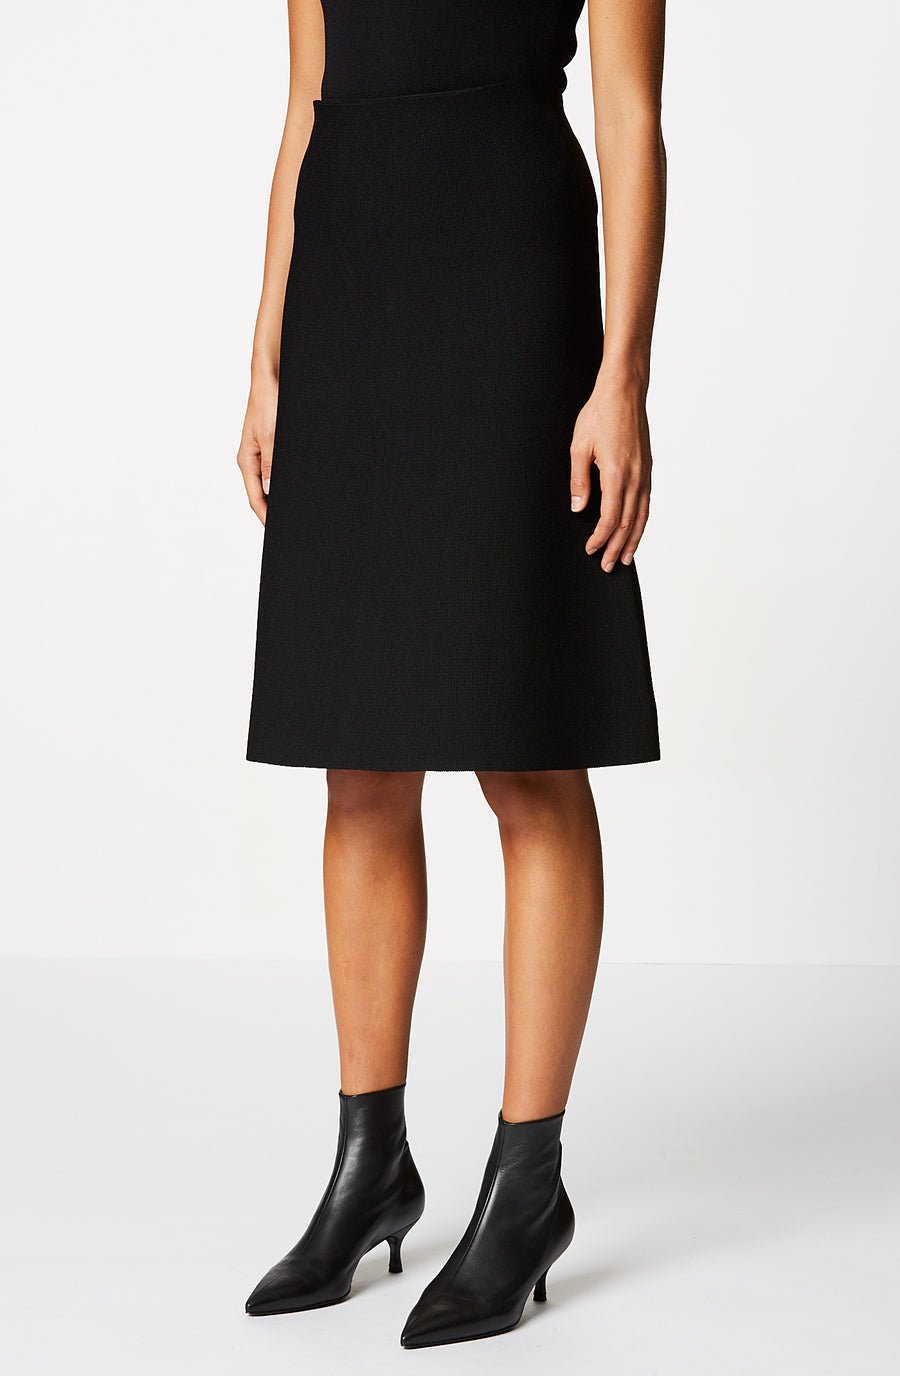 CREPE KNIT ALINE SKIRT